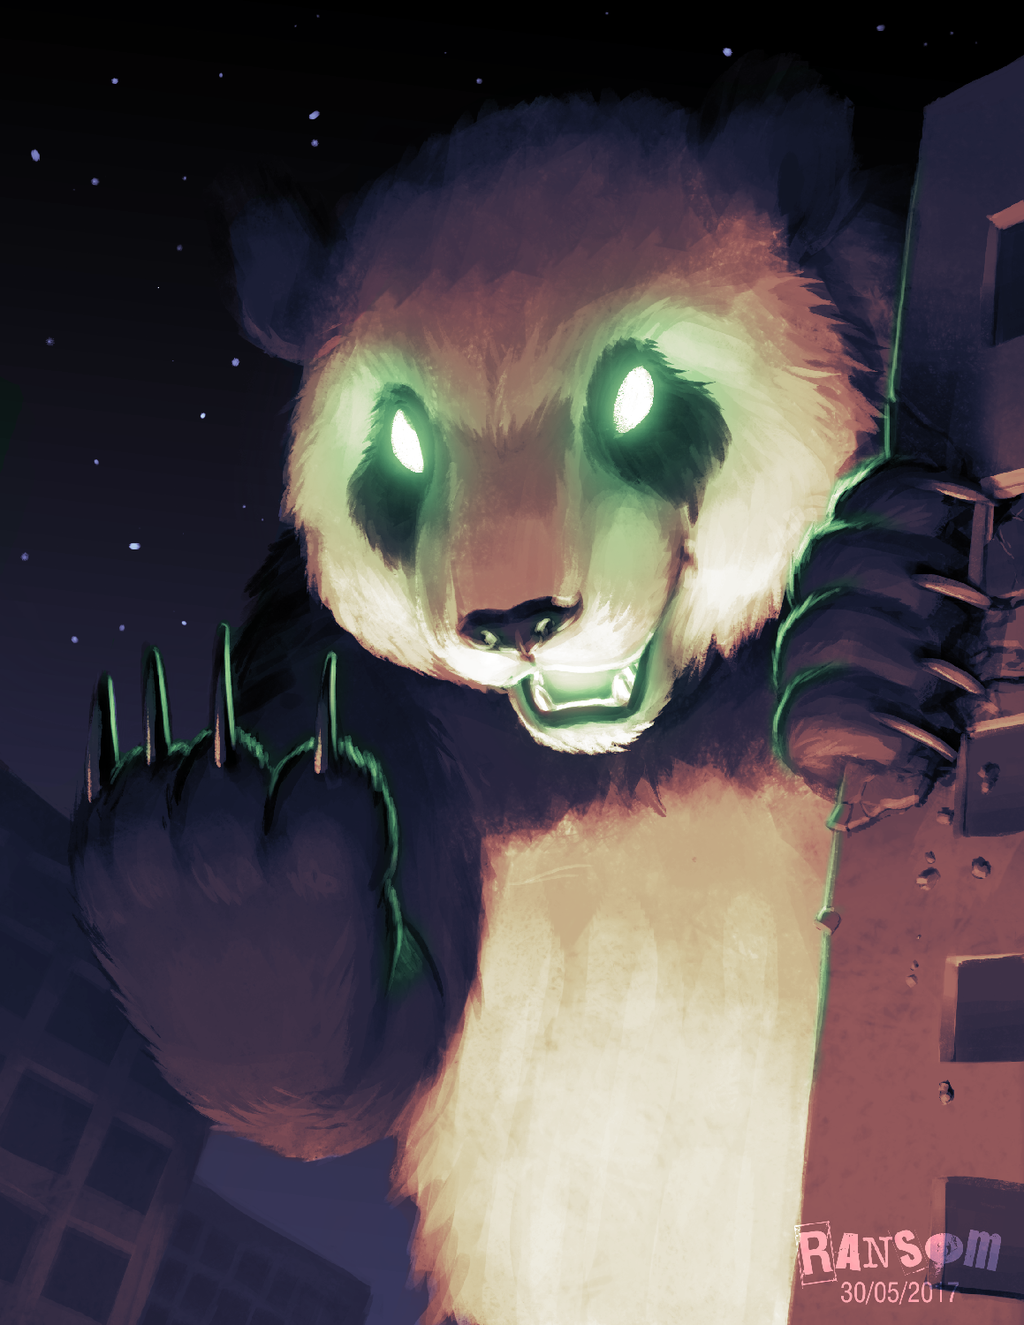 Most recent image: Revenge of the Gigantic Panda